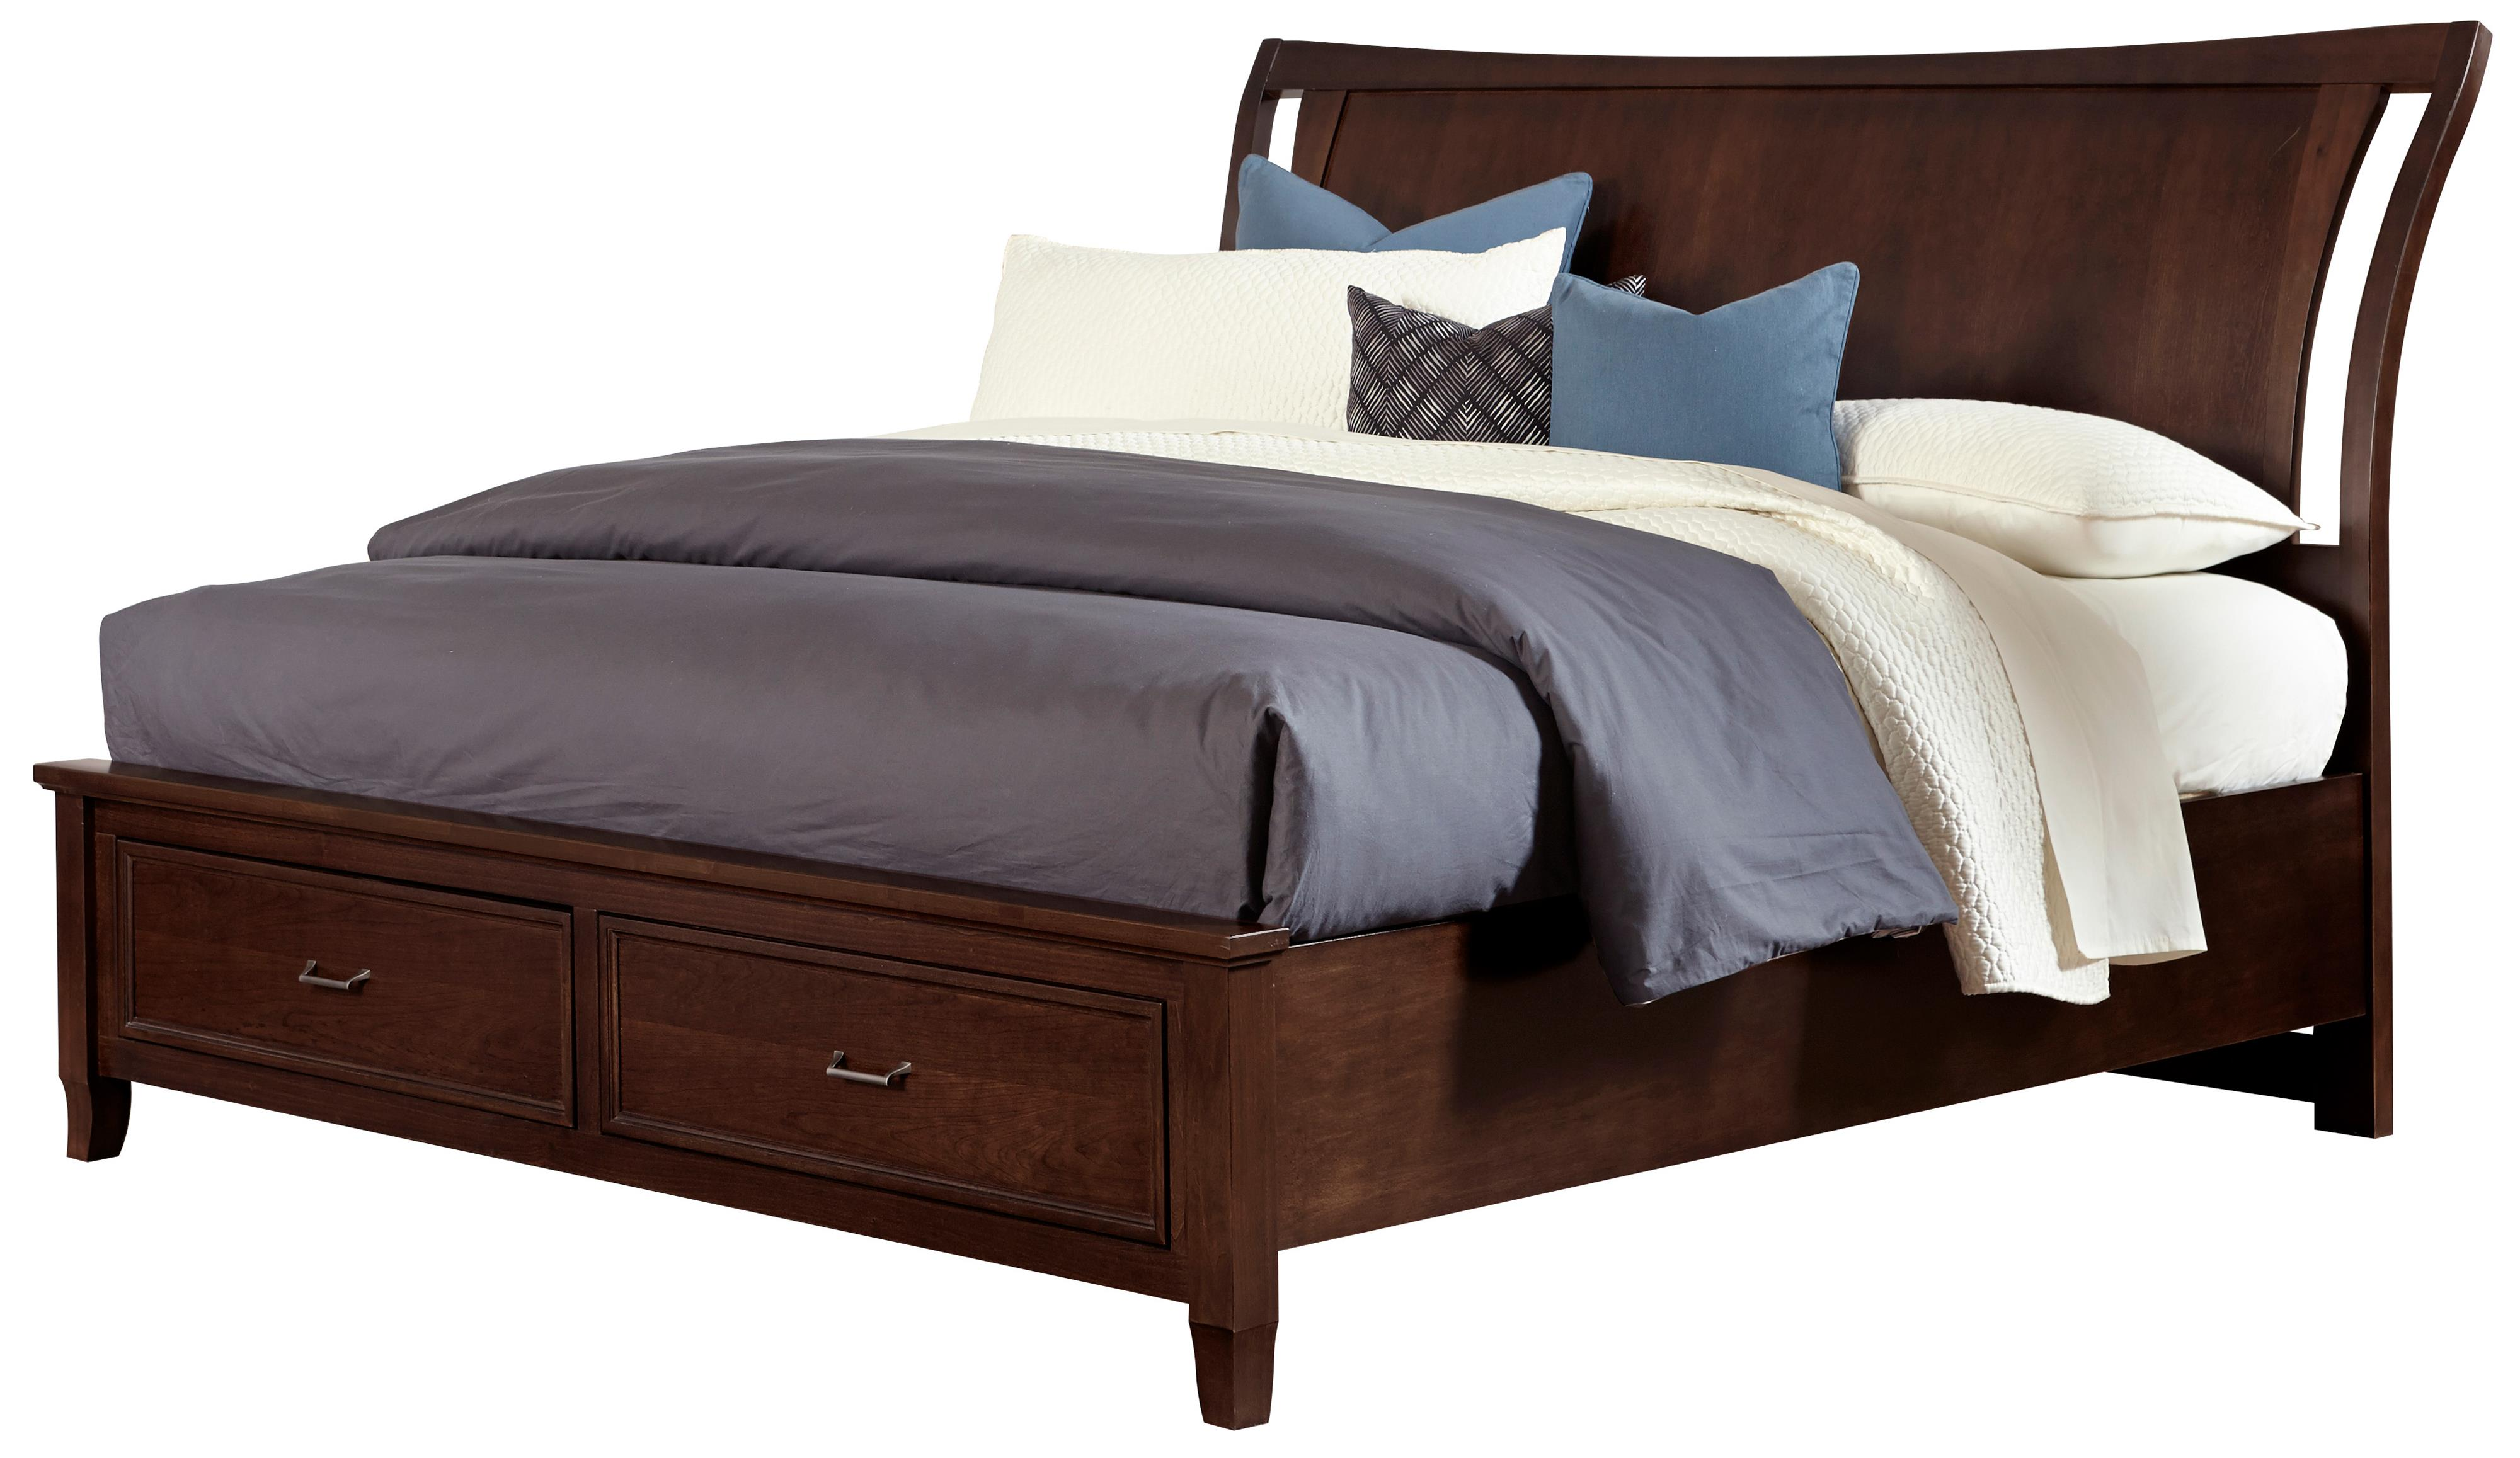 Vaughan Bassett Commentary King Wing Bed with Storage Footboard - Item Number: 392-661+066B+502+666T